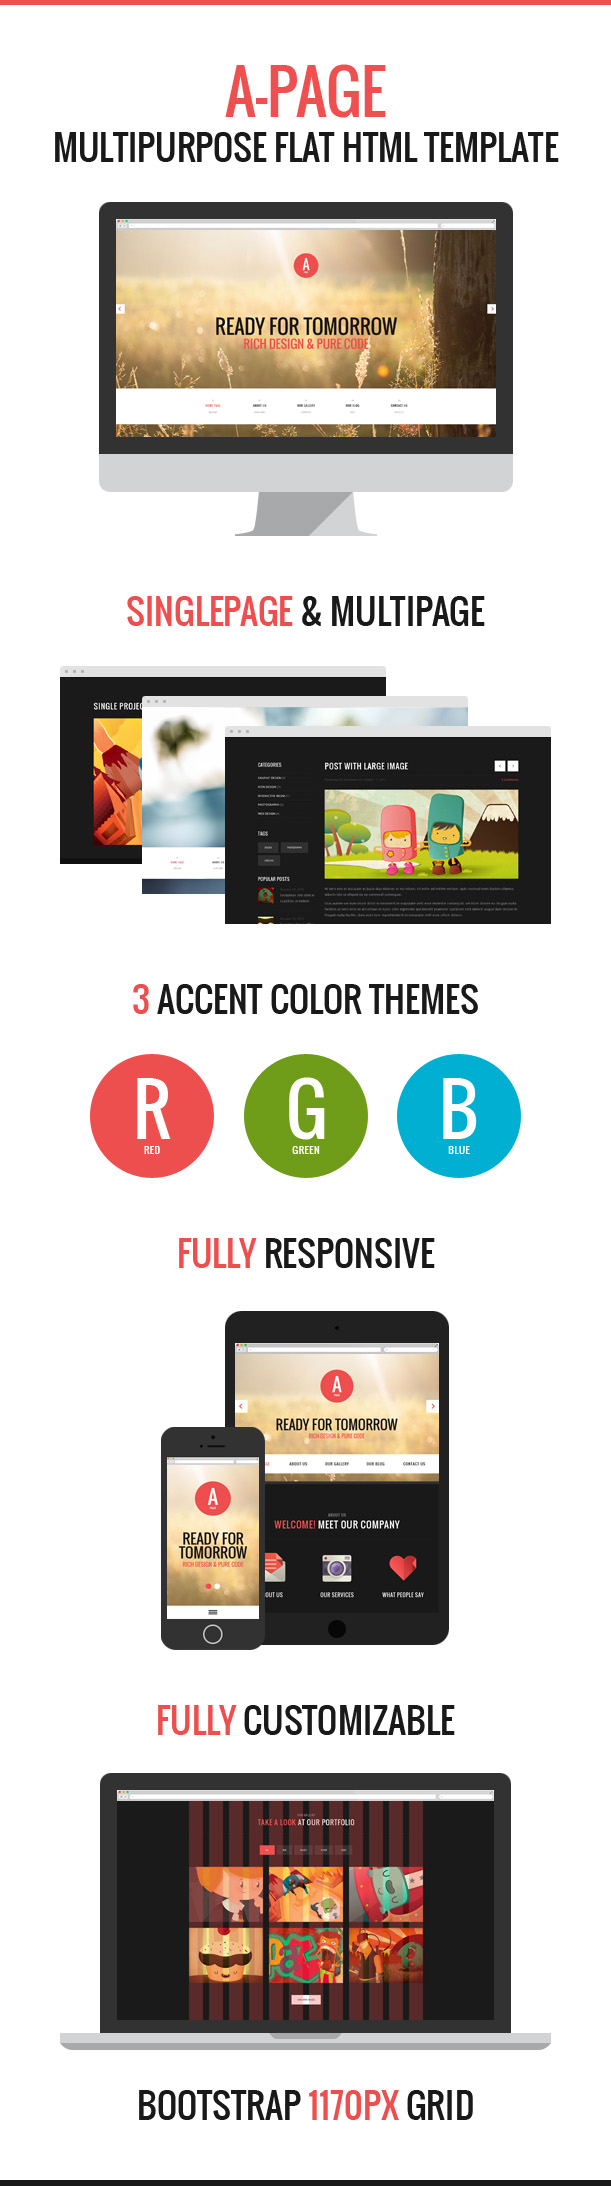 A-Page by DX Templates - multipurpose PSD template